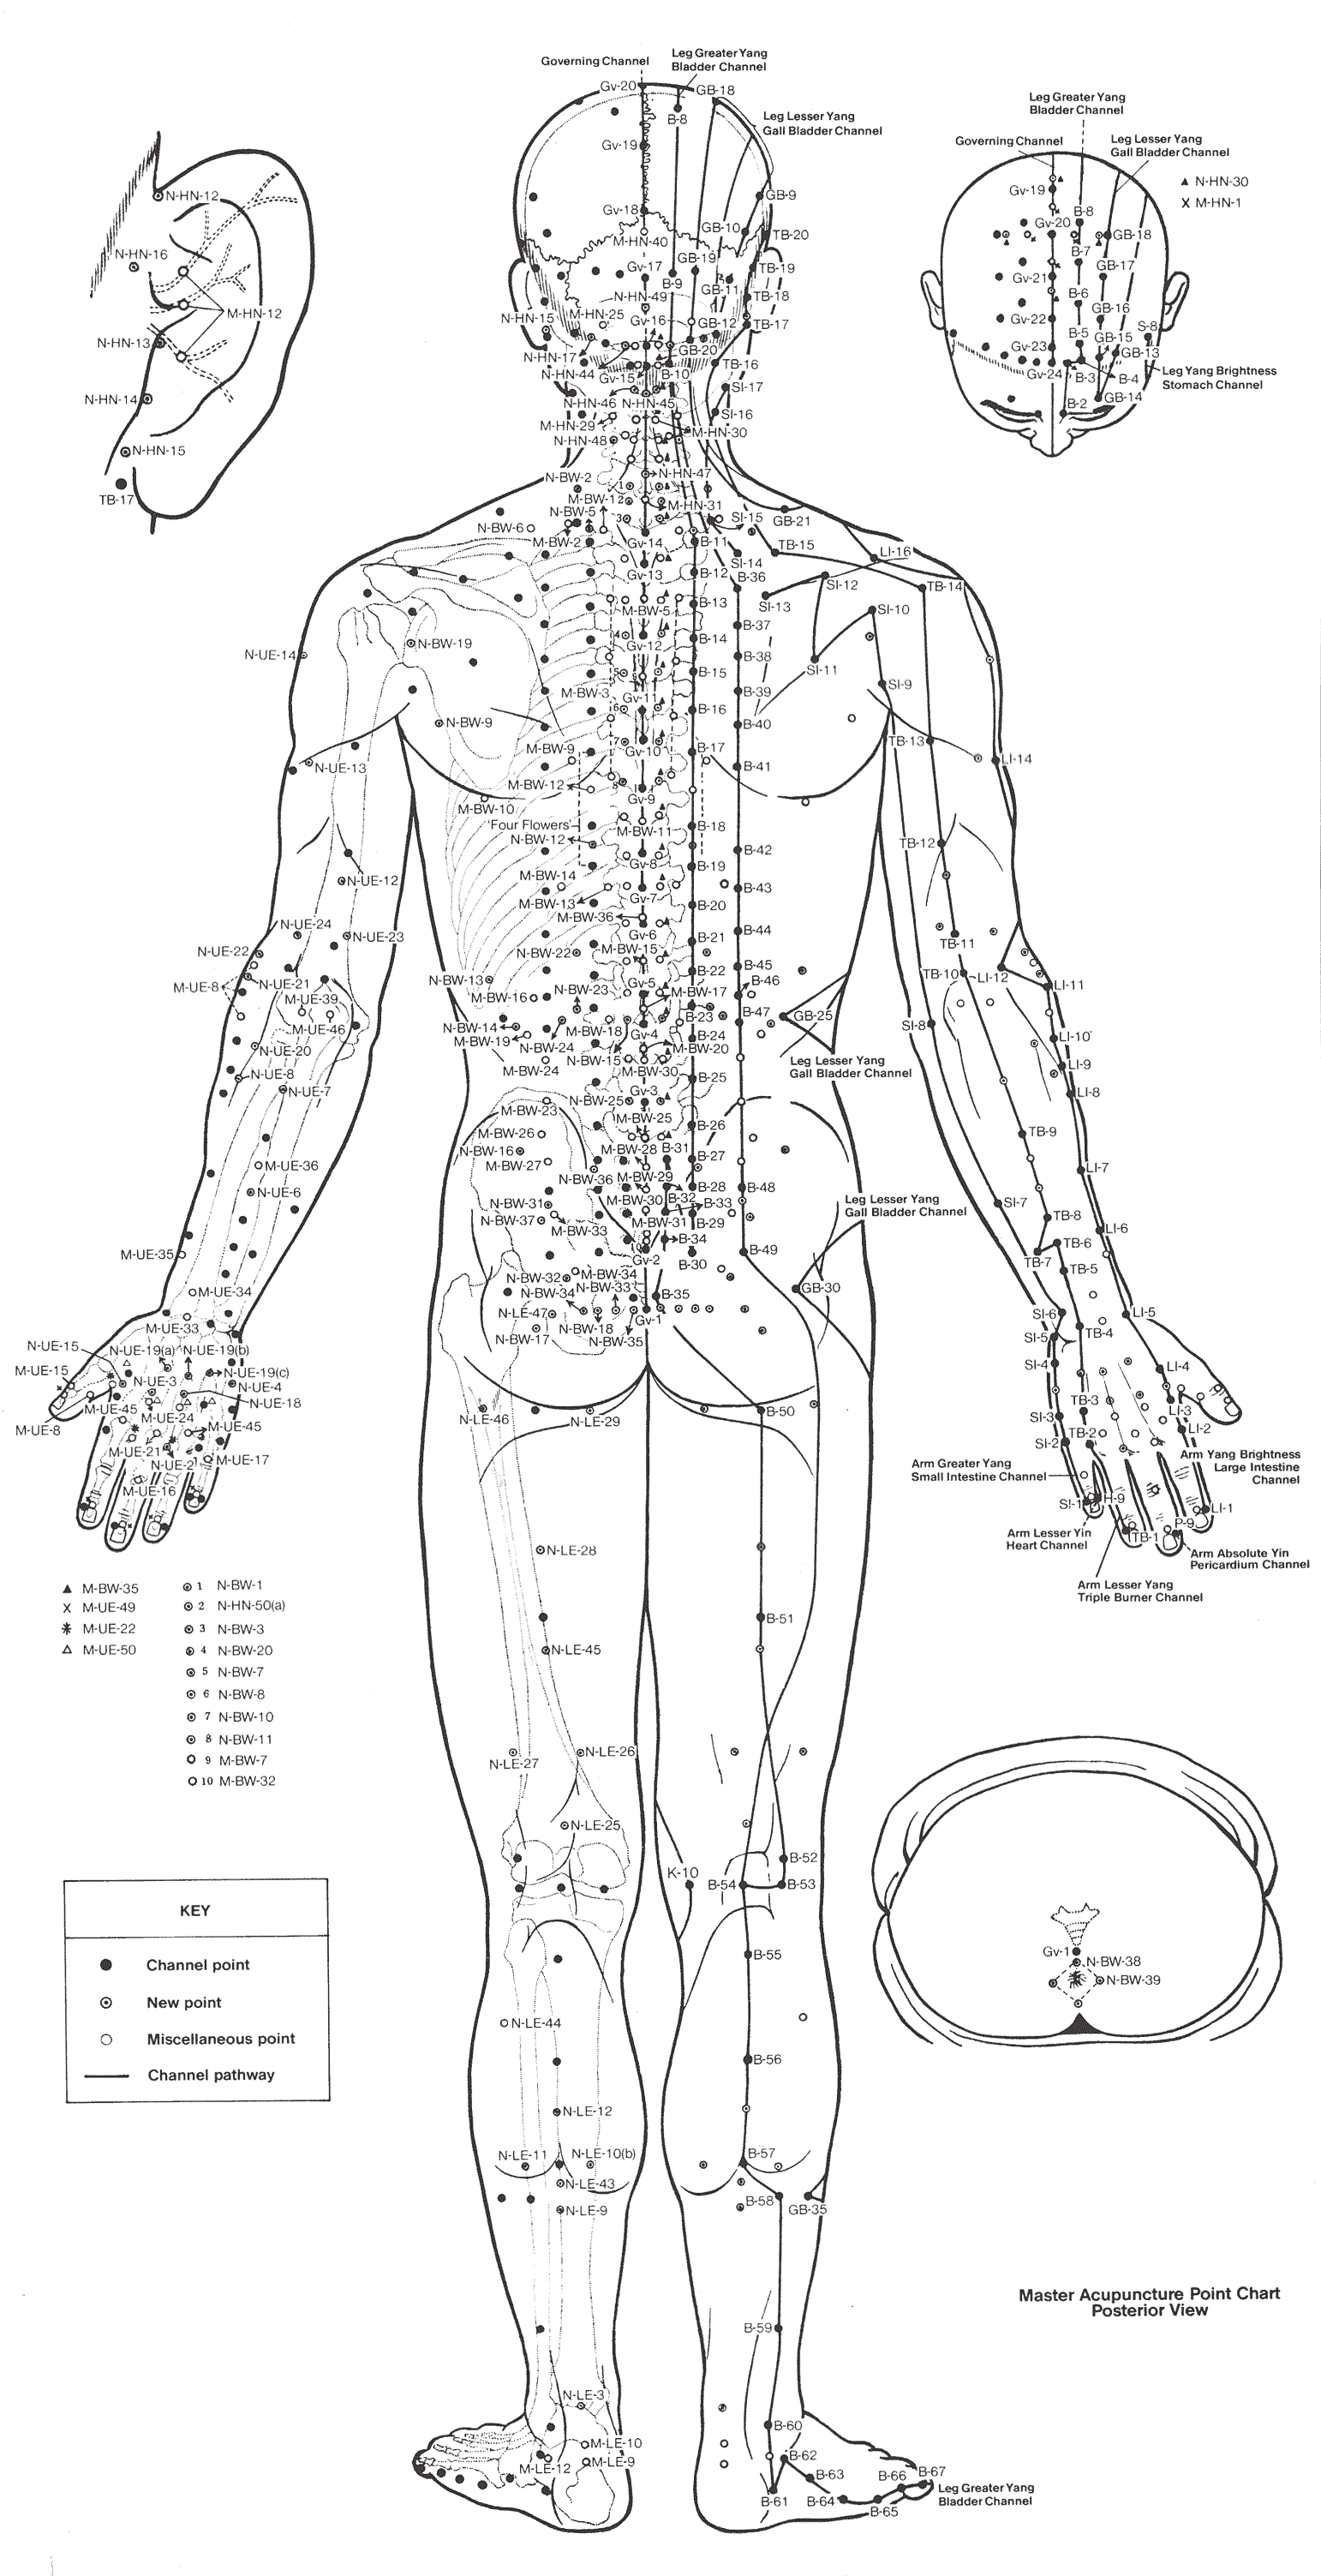 Pressure Point Diagram